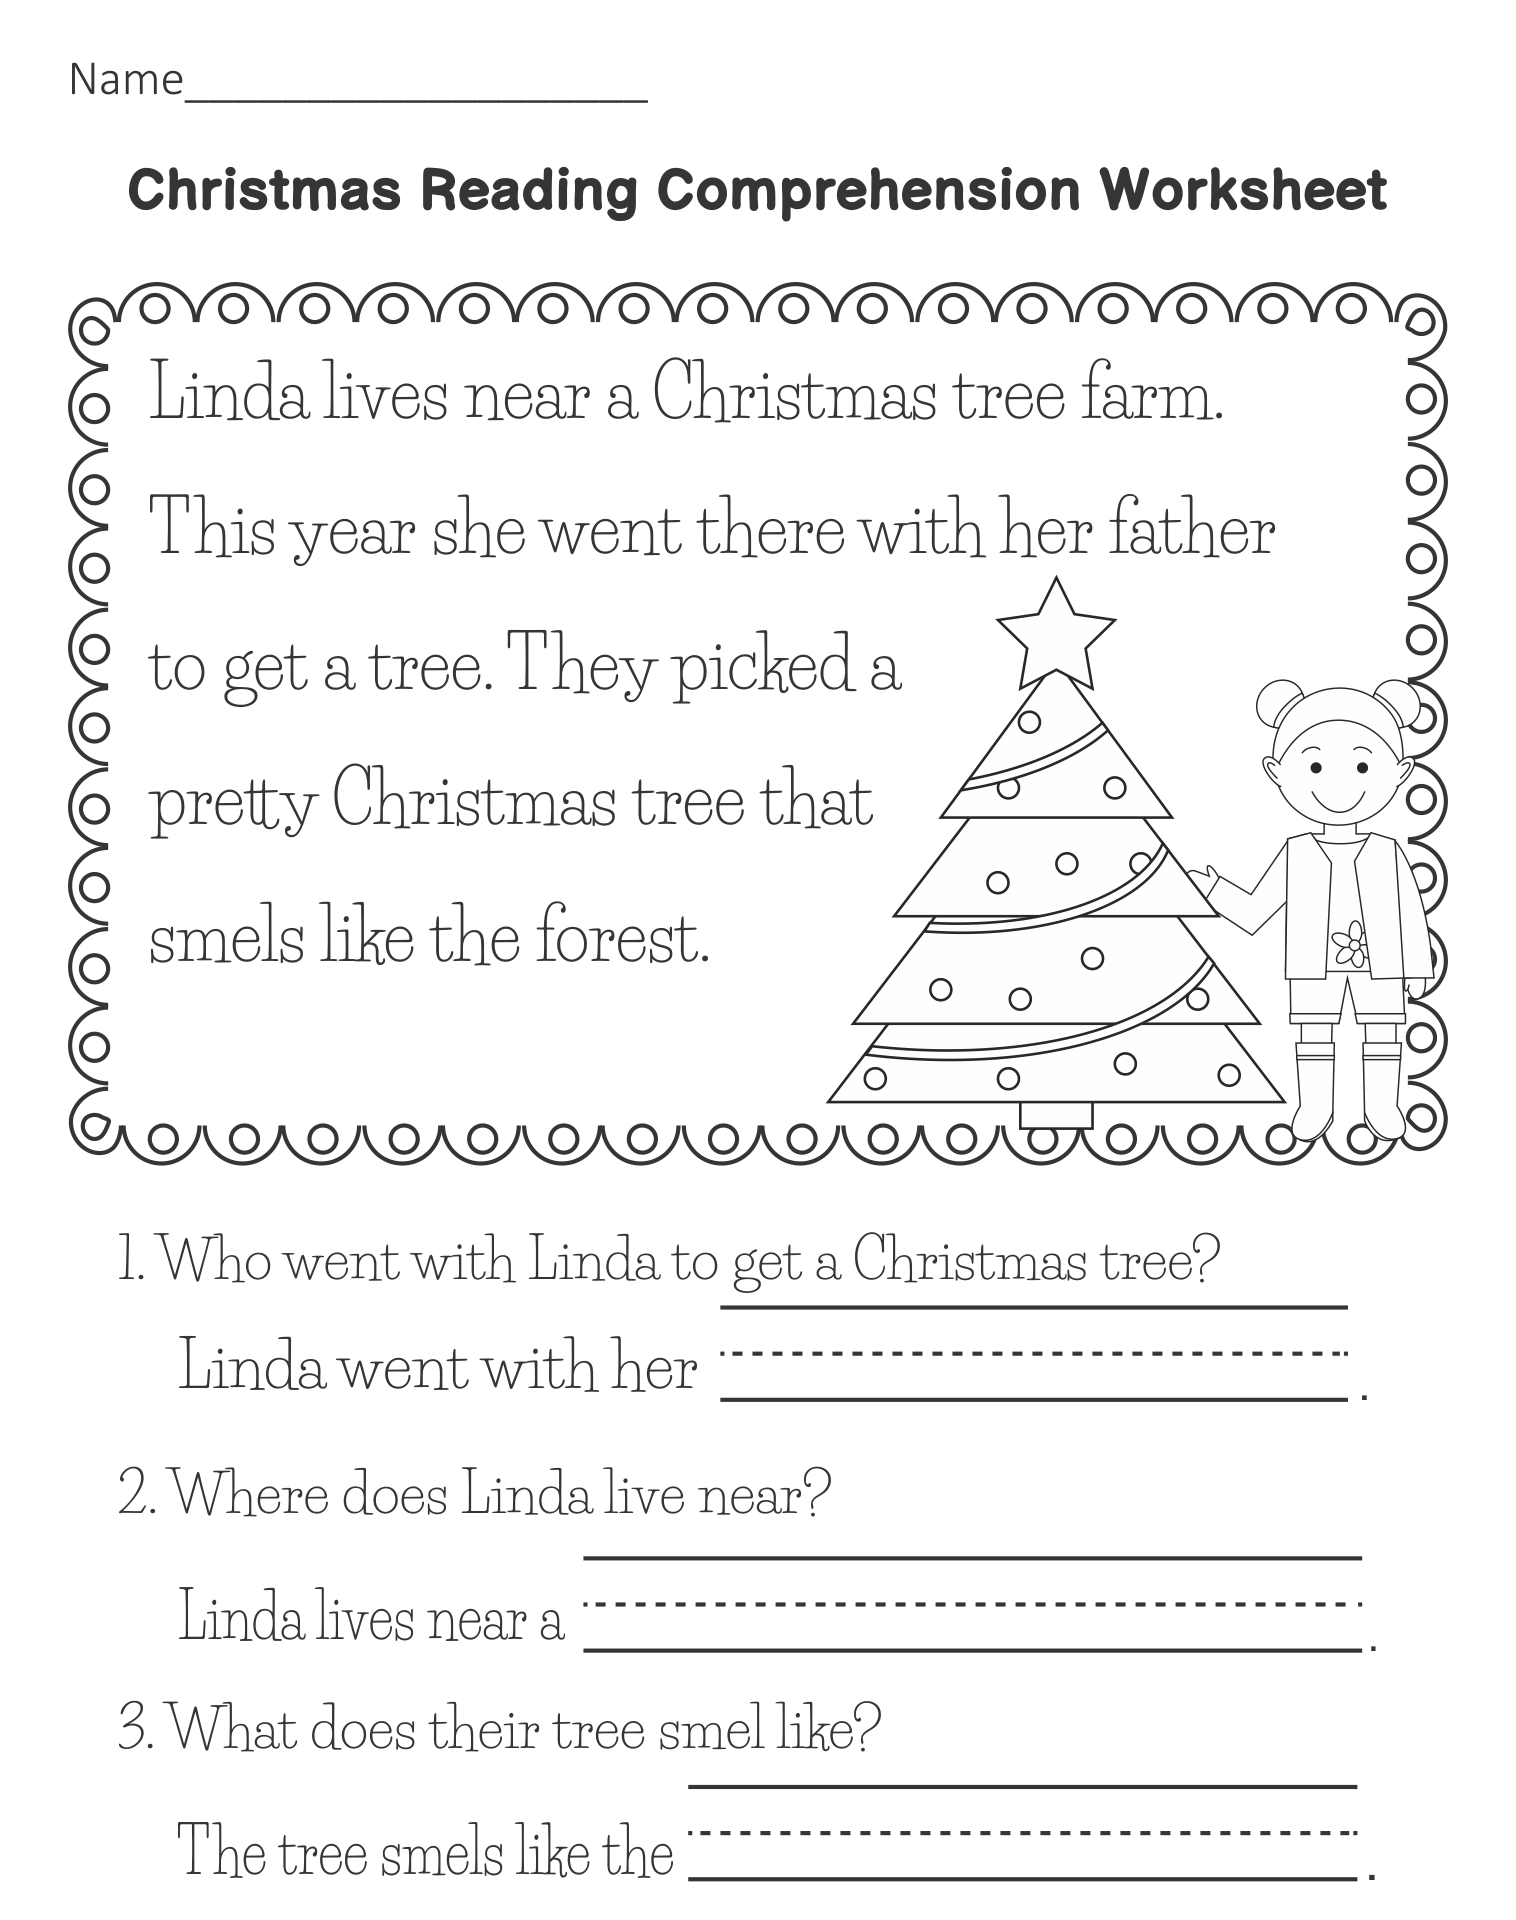 Worksheet Pre K Reading Activities free printable reading worksheets for pre k rhymes 7 best images of kindergarten christmas activities printable